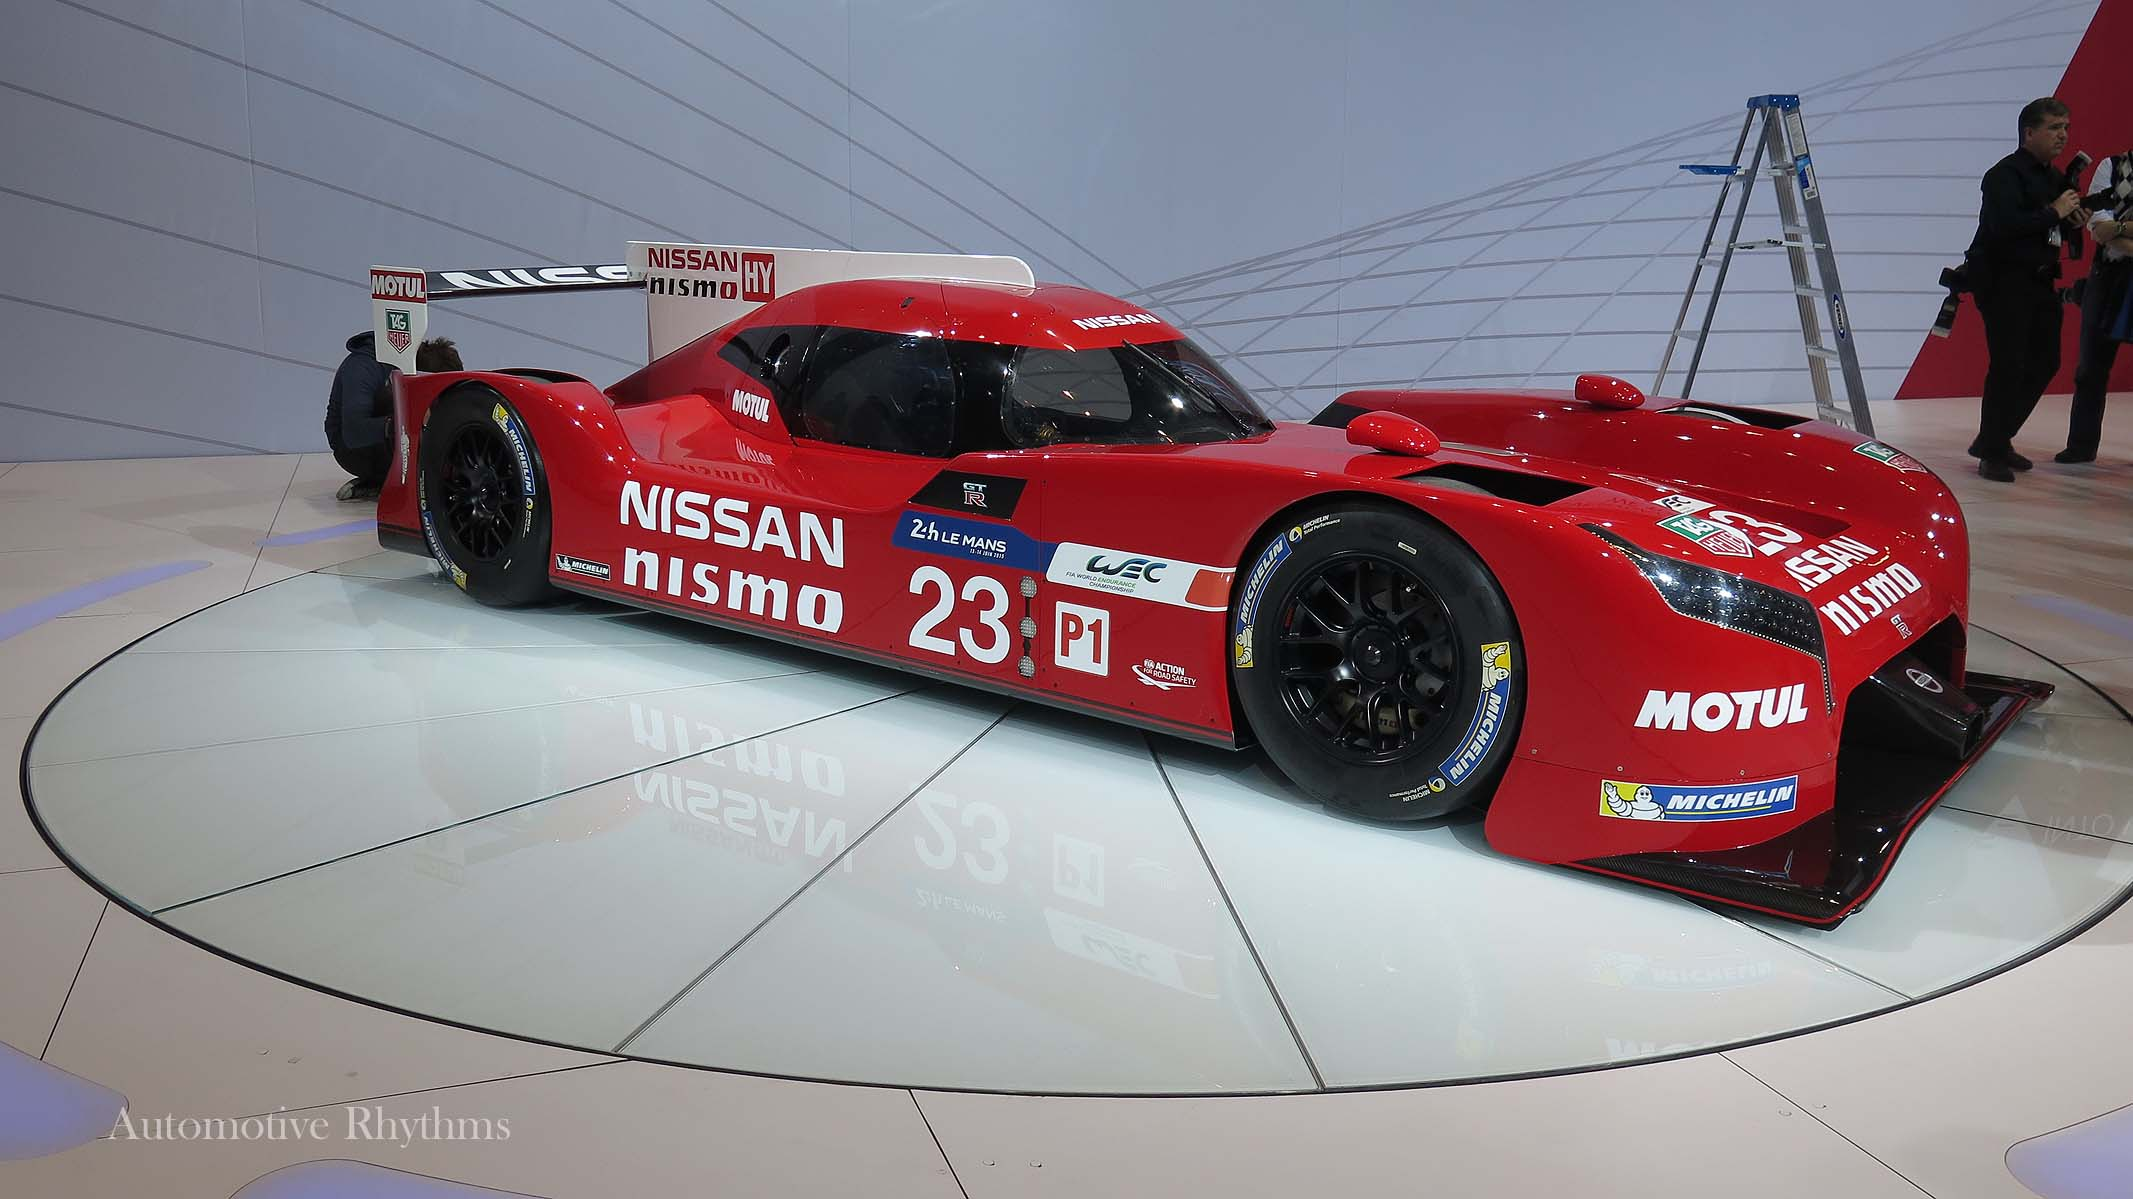 Nissan GTR LM NISMO Racer Unveiled at the 2015 Chicago Auto Show